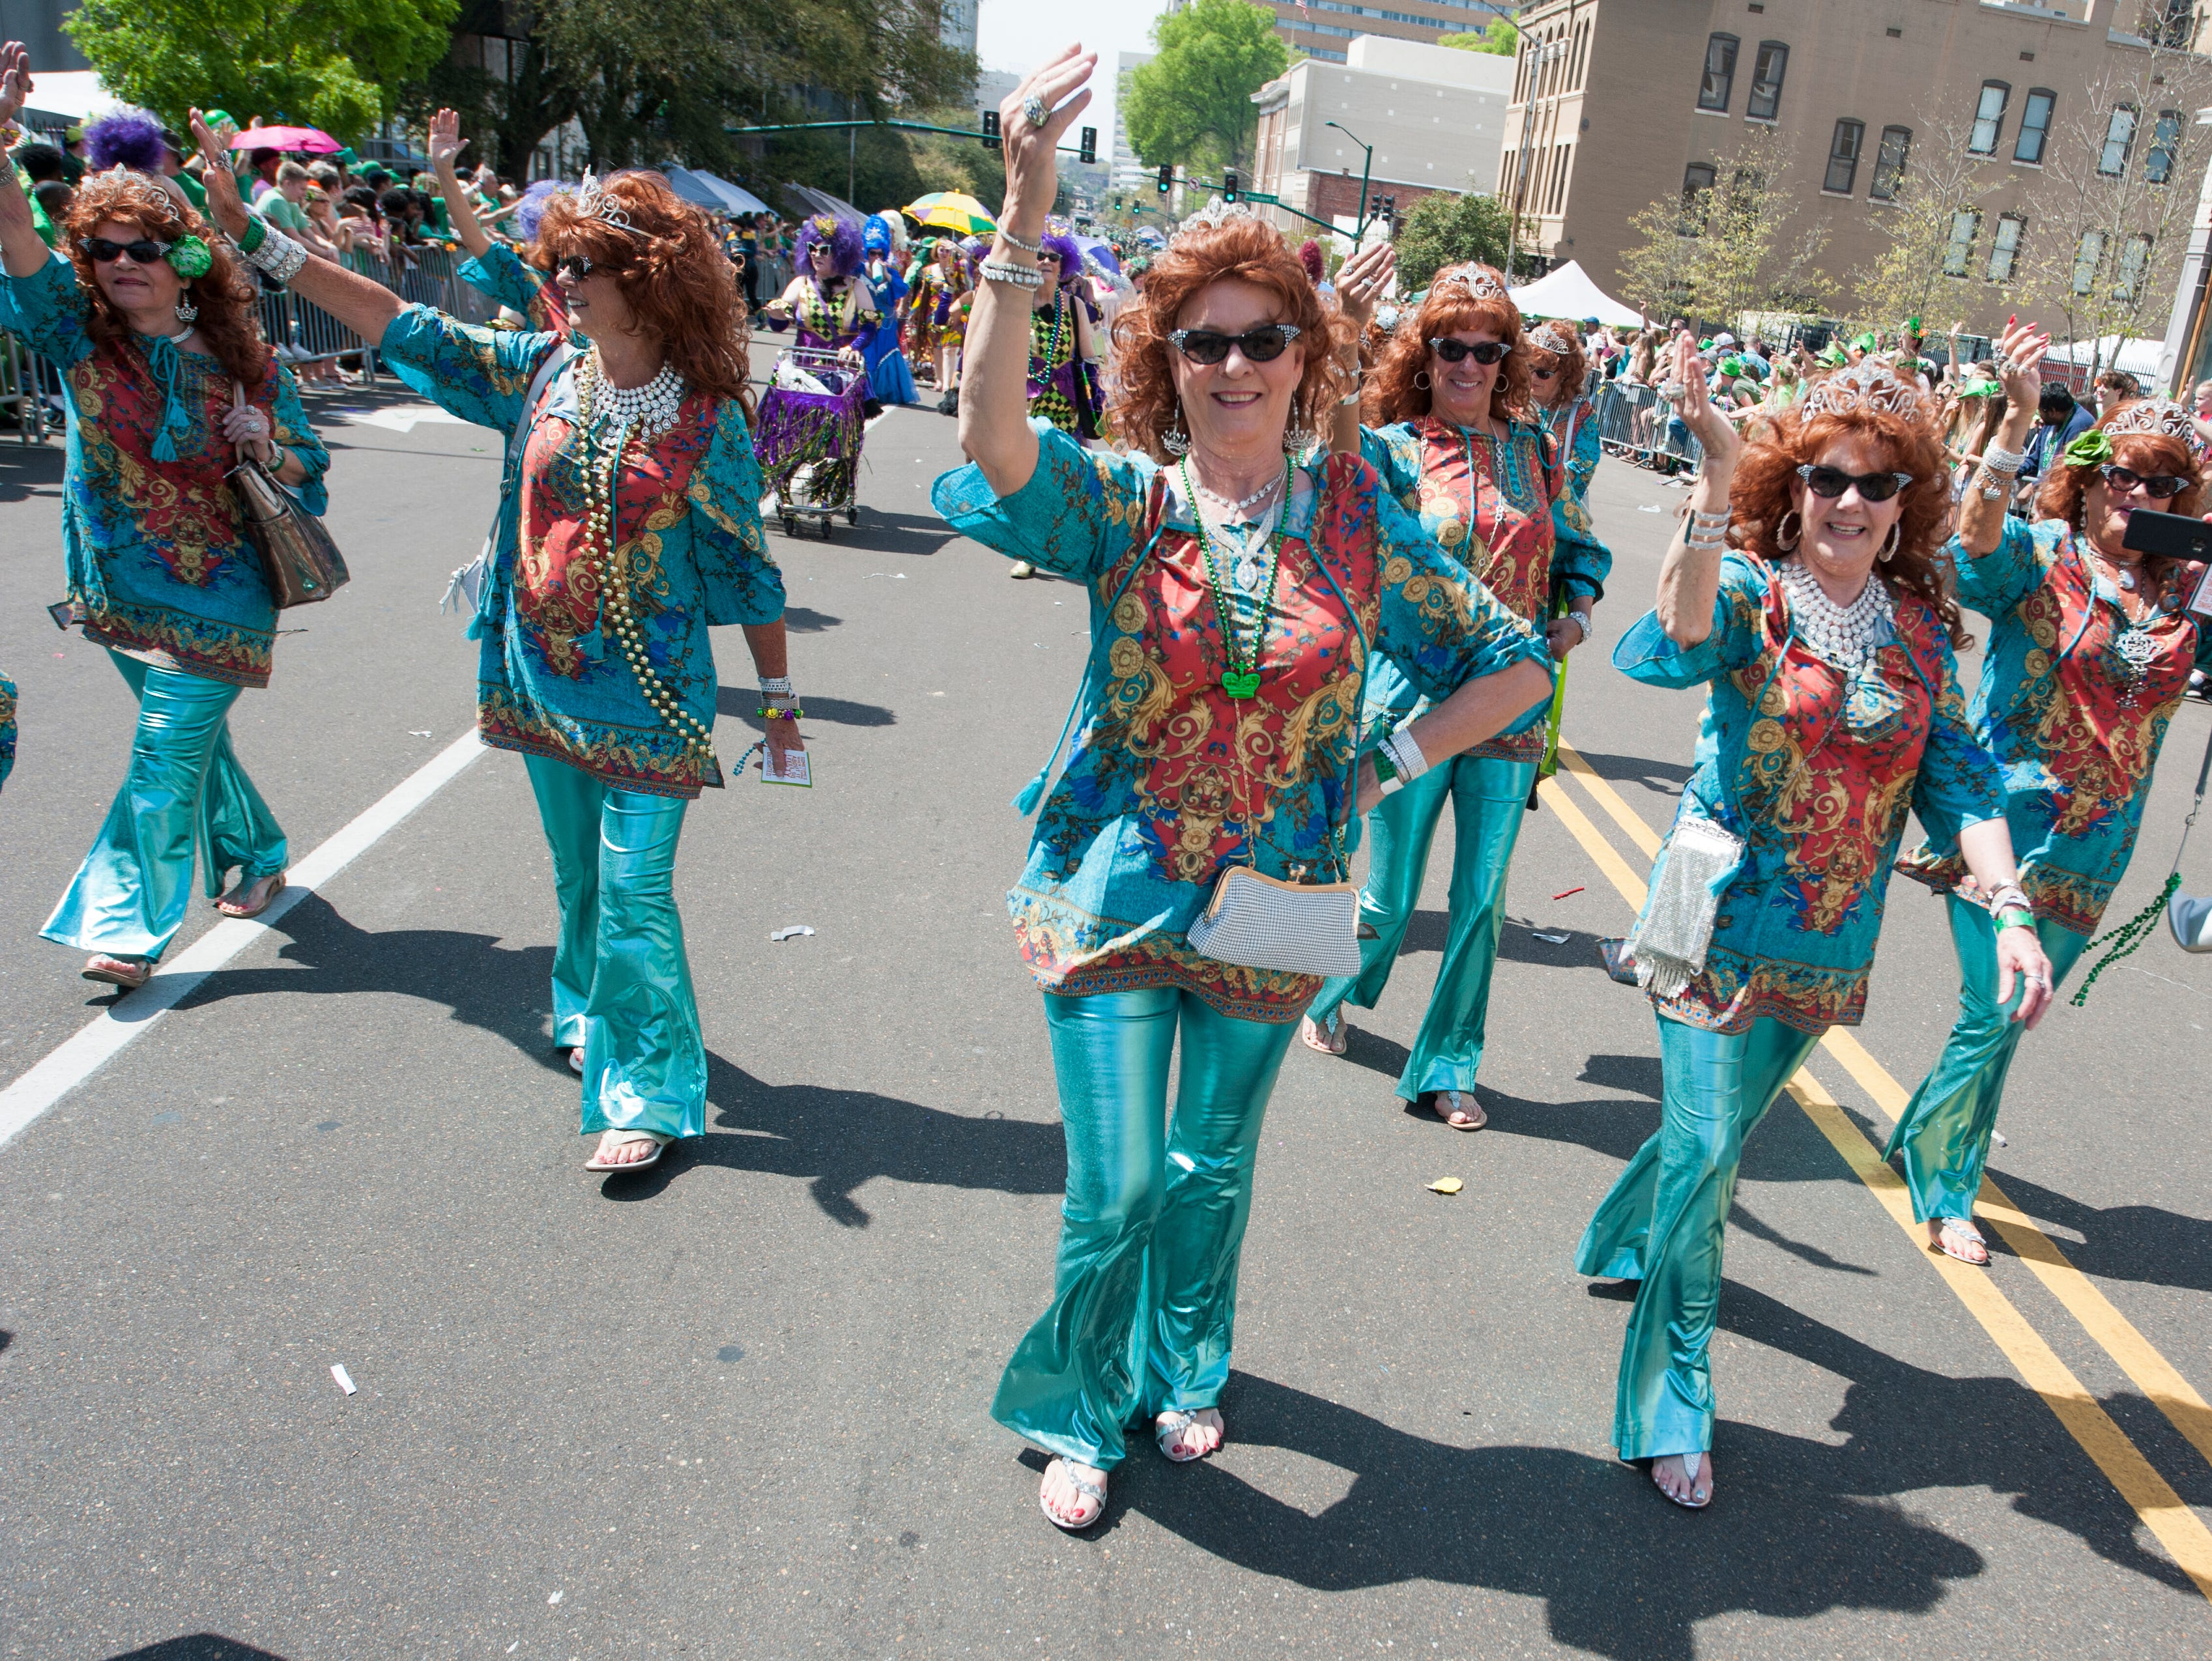 Sweet Potato wannabes from The Villages in Florida have perfected their royal wave for their march in Hal's St. Paddy's Day Parade, Saturday, March 23, 2019.